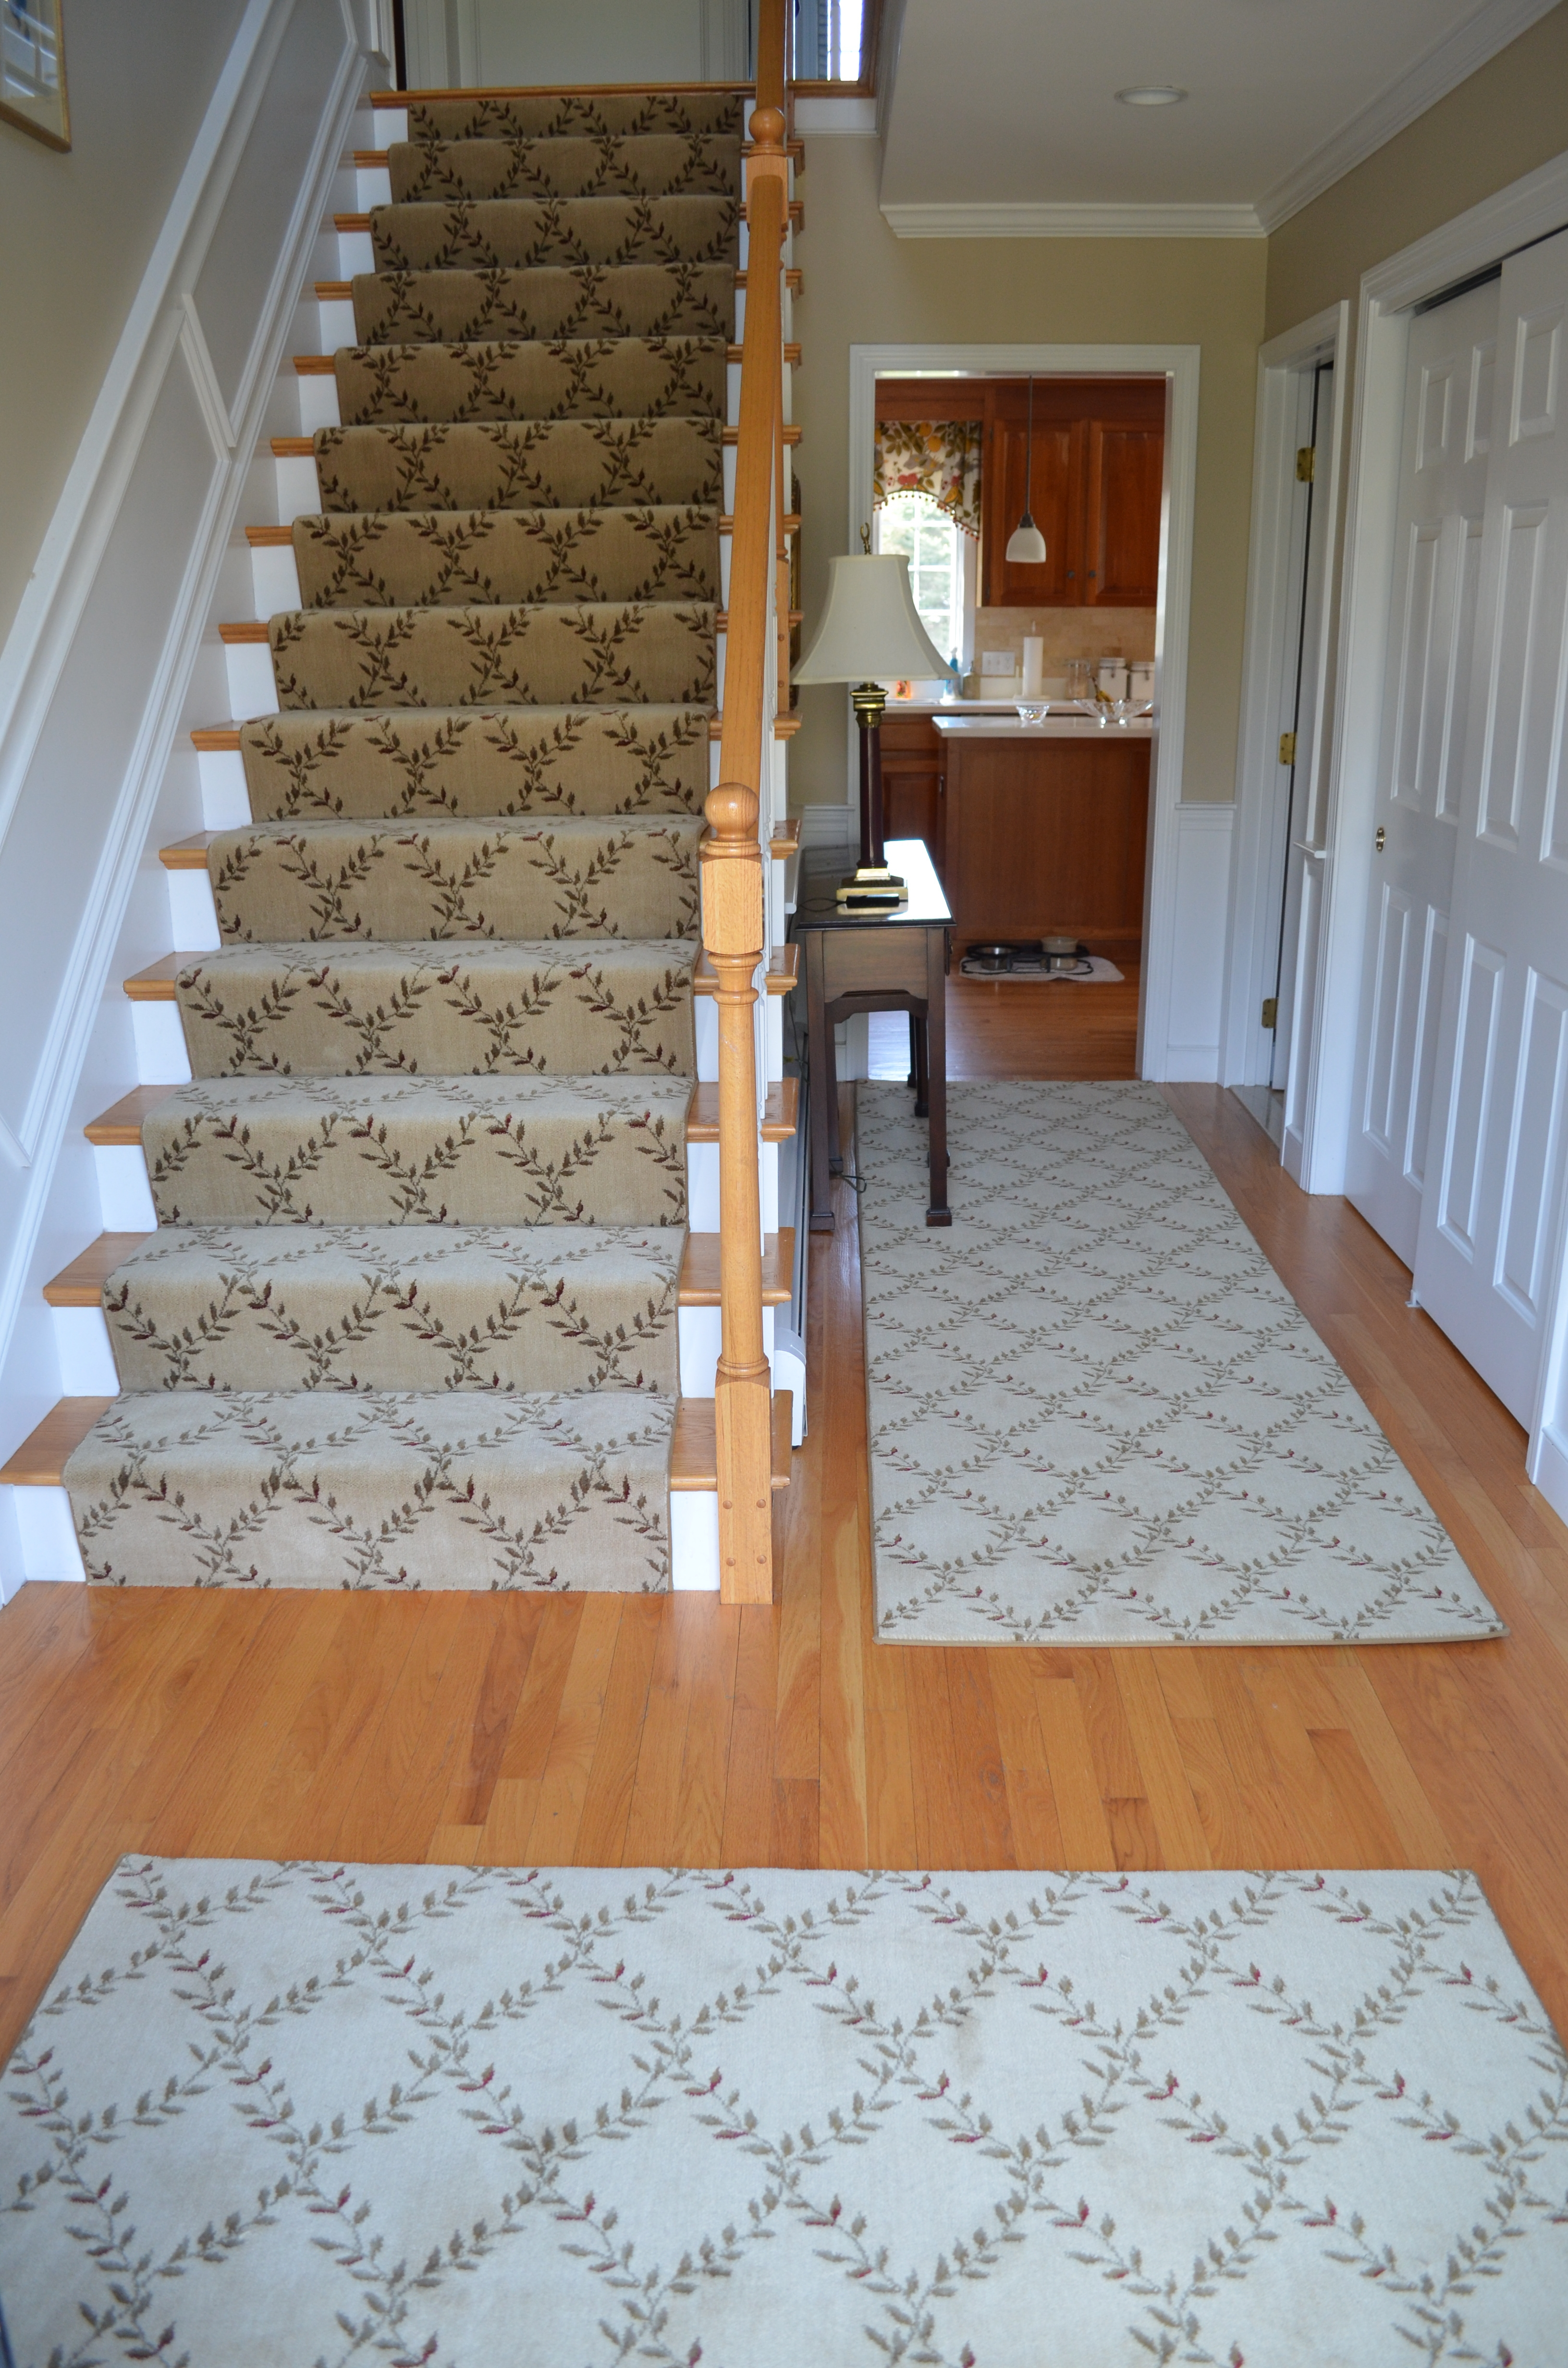 Stair Runners Masland Tangier Stair Runner Installed In A Home In Within Runner Carpets For Hallways (#19 of 20)